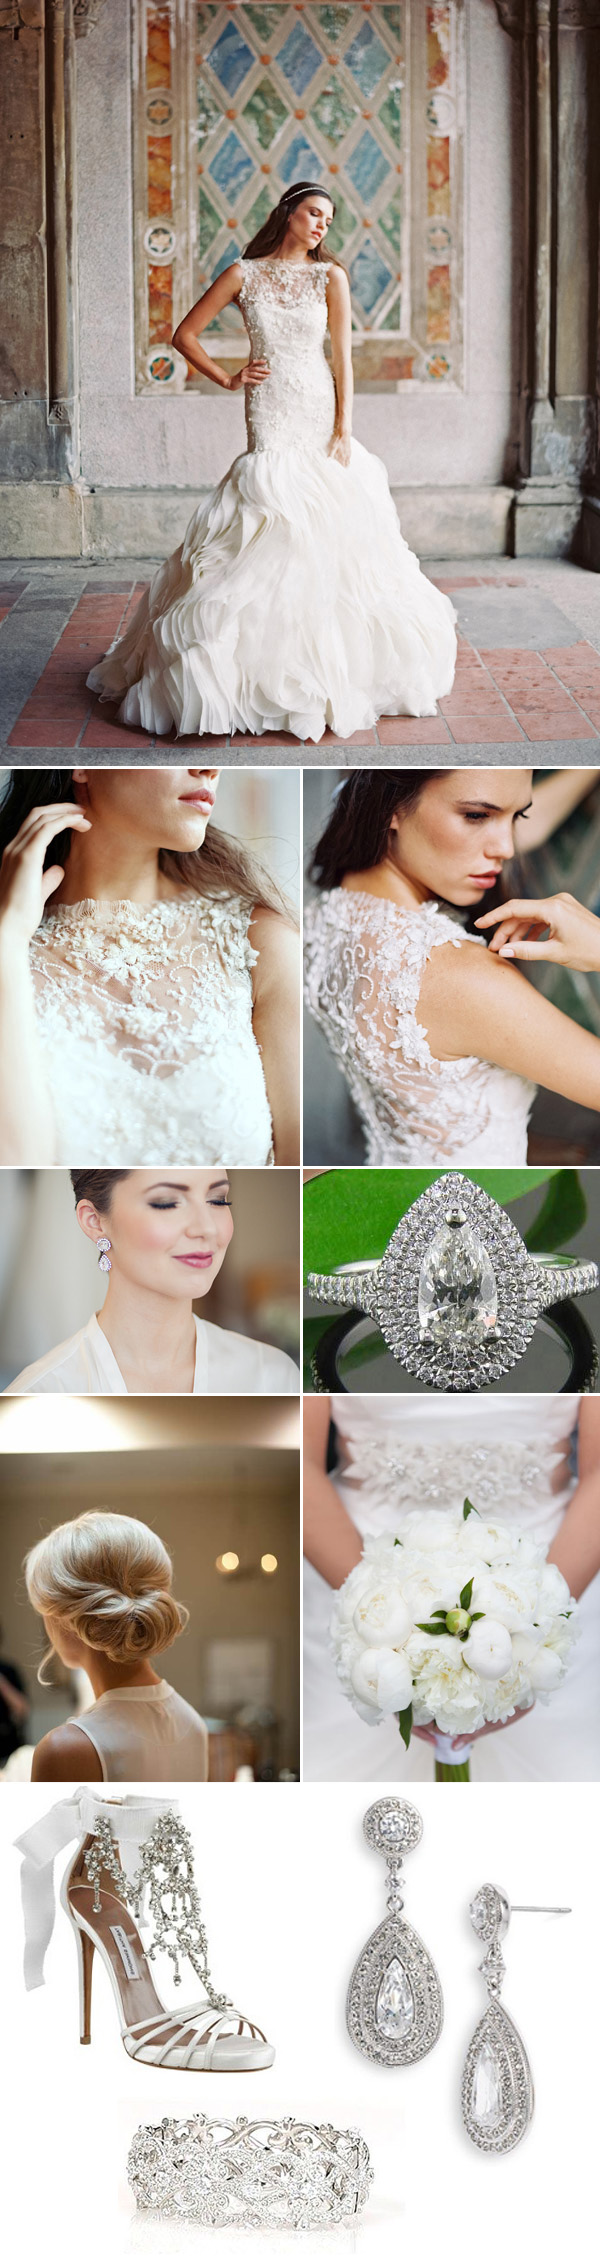 bridal style inspiration boards from bridal market for fall 2014 | via junebugweddings.com